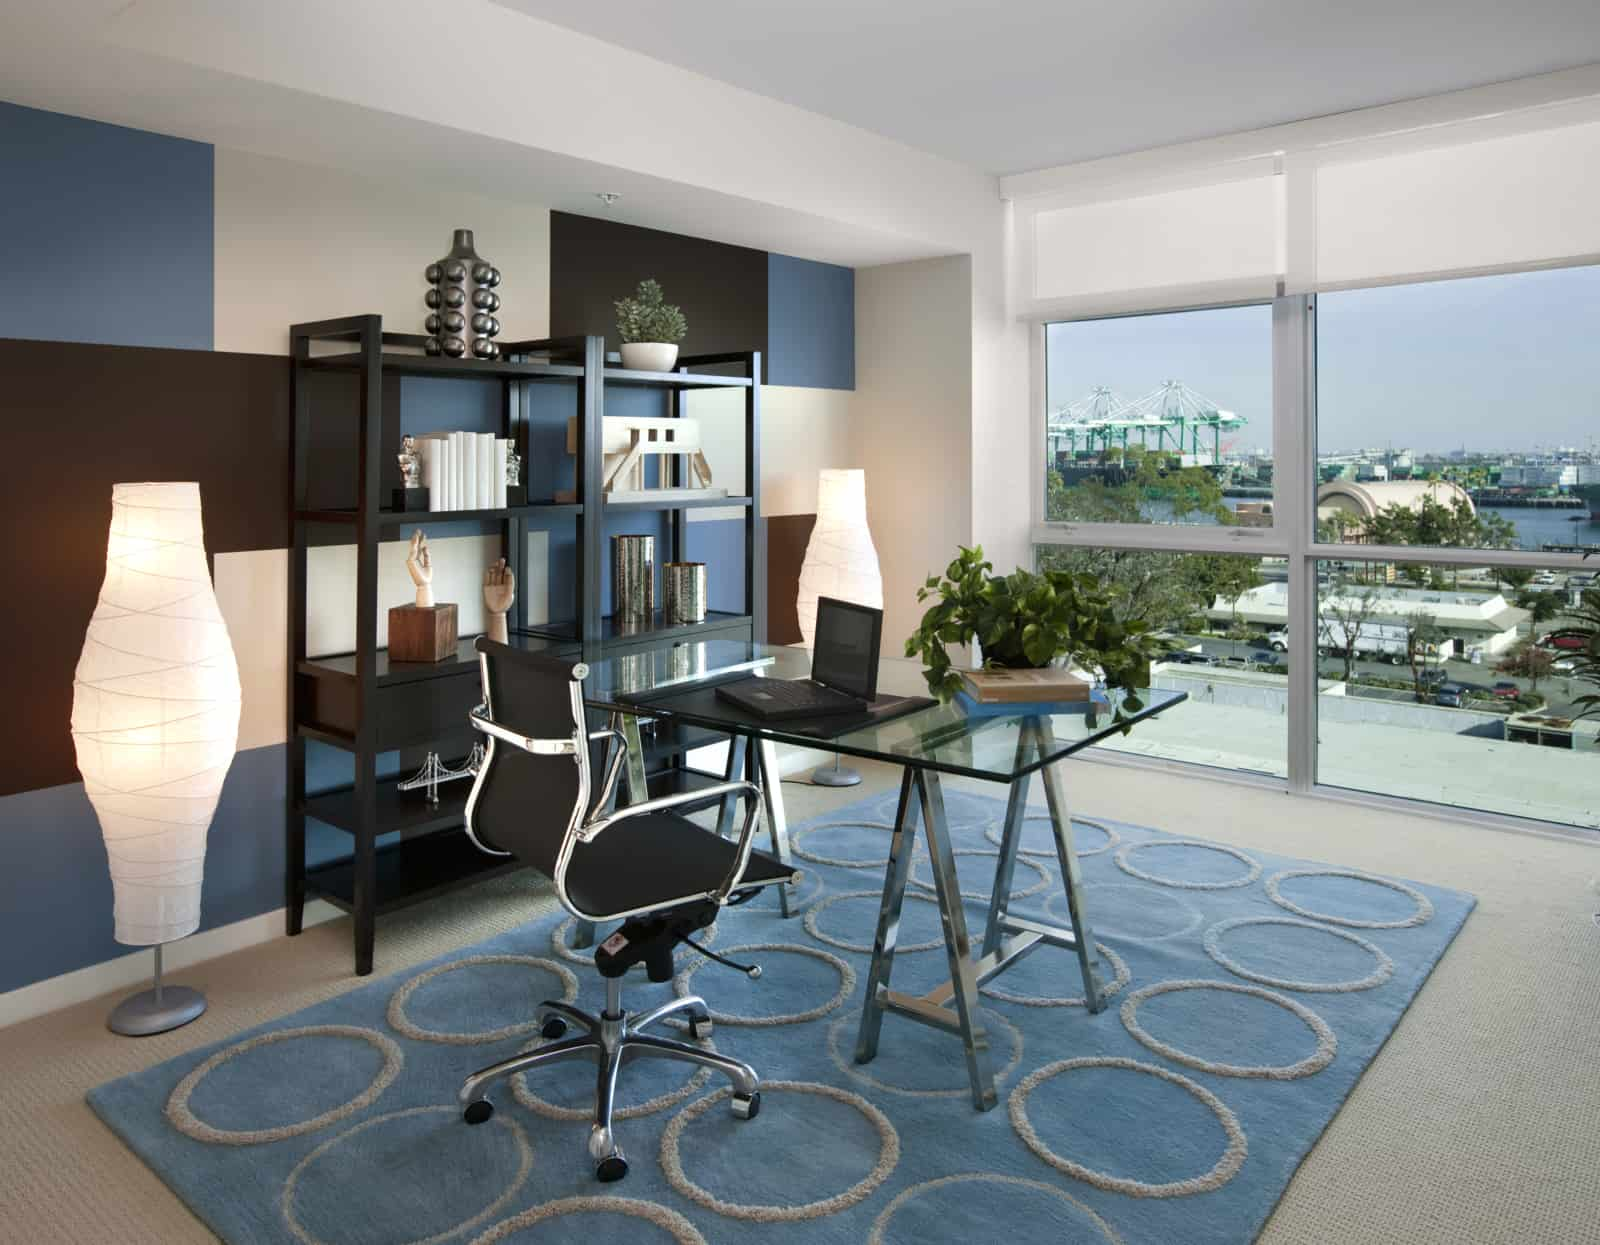 Interior of modern office in a high-rise apartment.